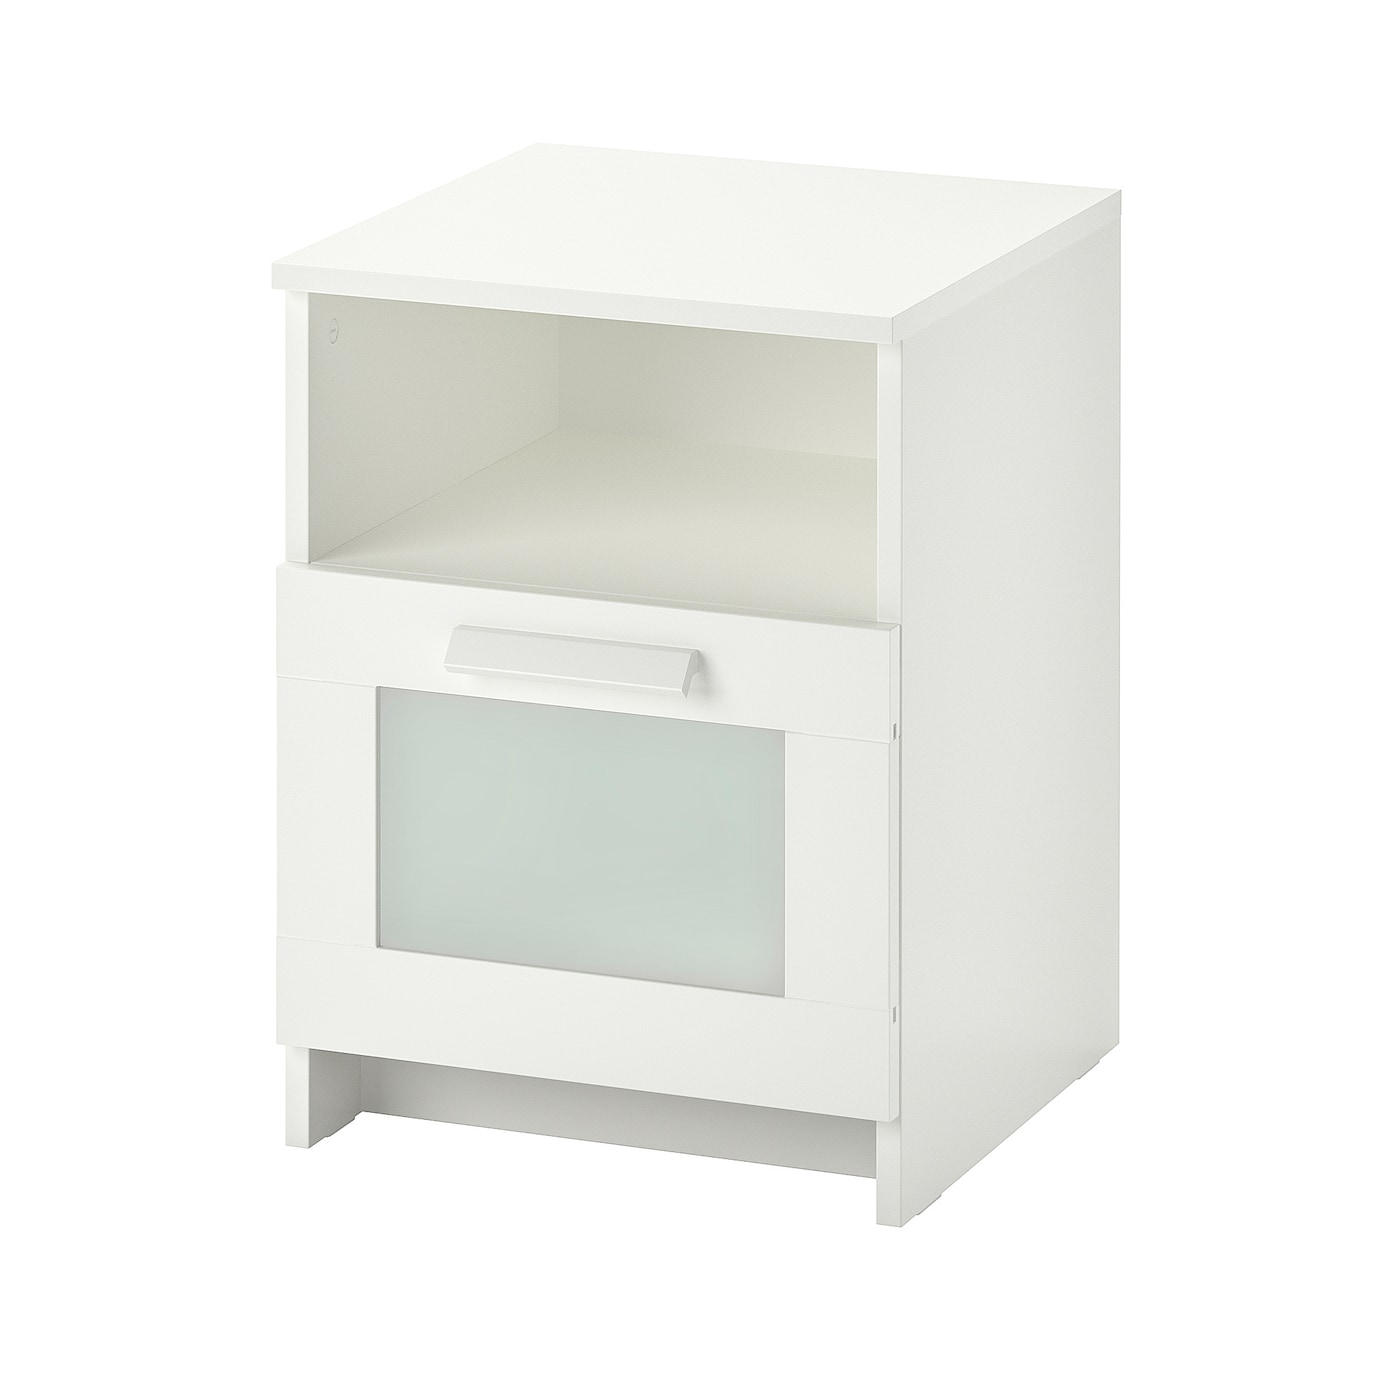 "Ikea Table De Nuit brimnes nightstand - white 15 3/8x16 1/8 "" (39x41 cm)"